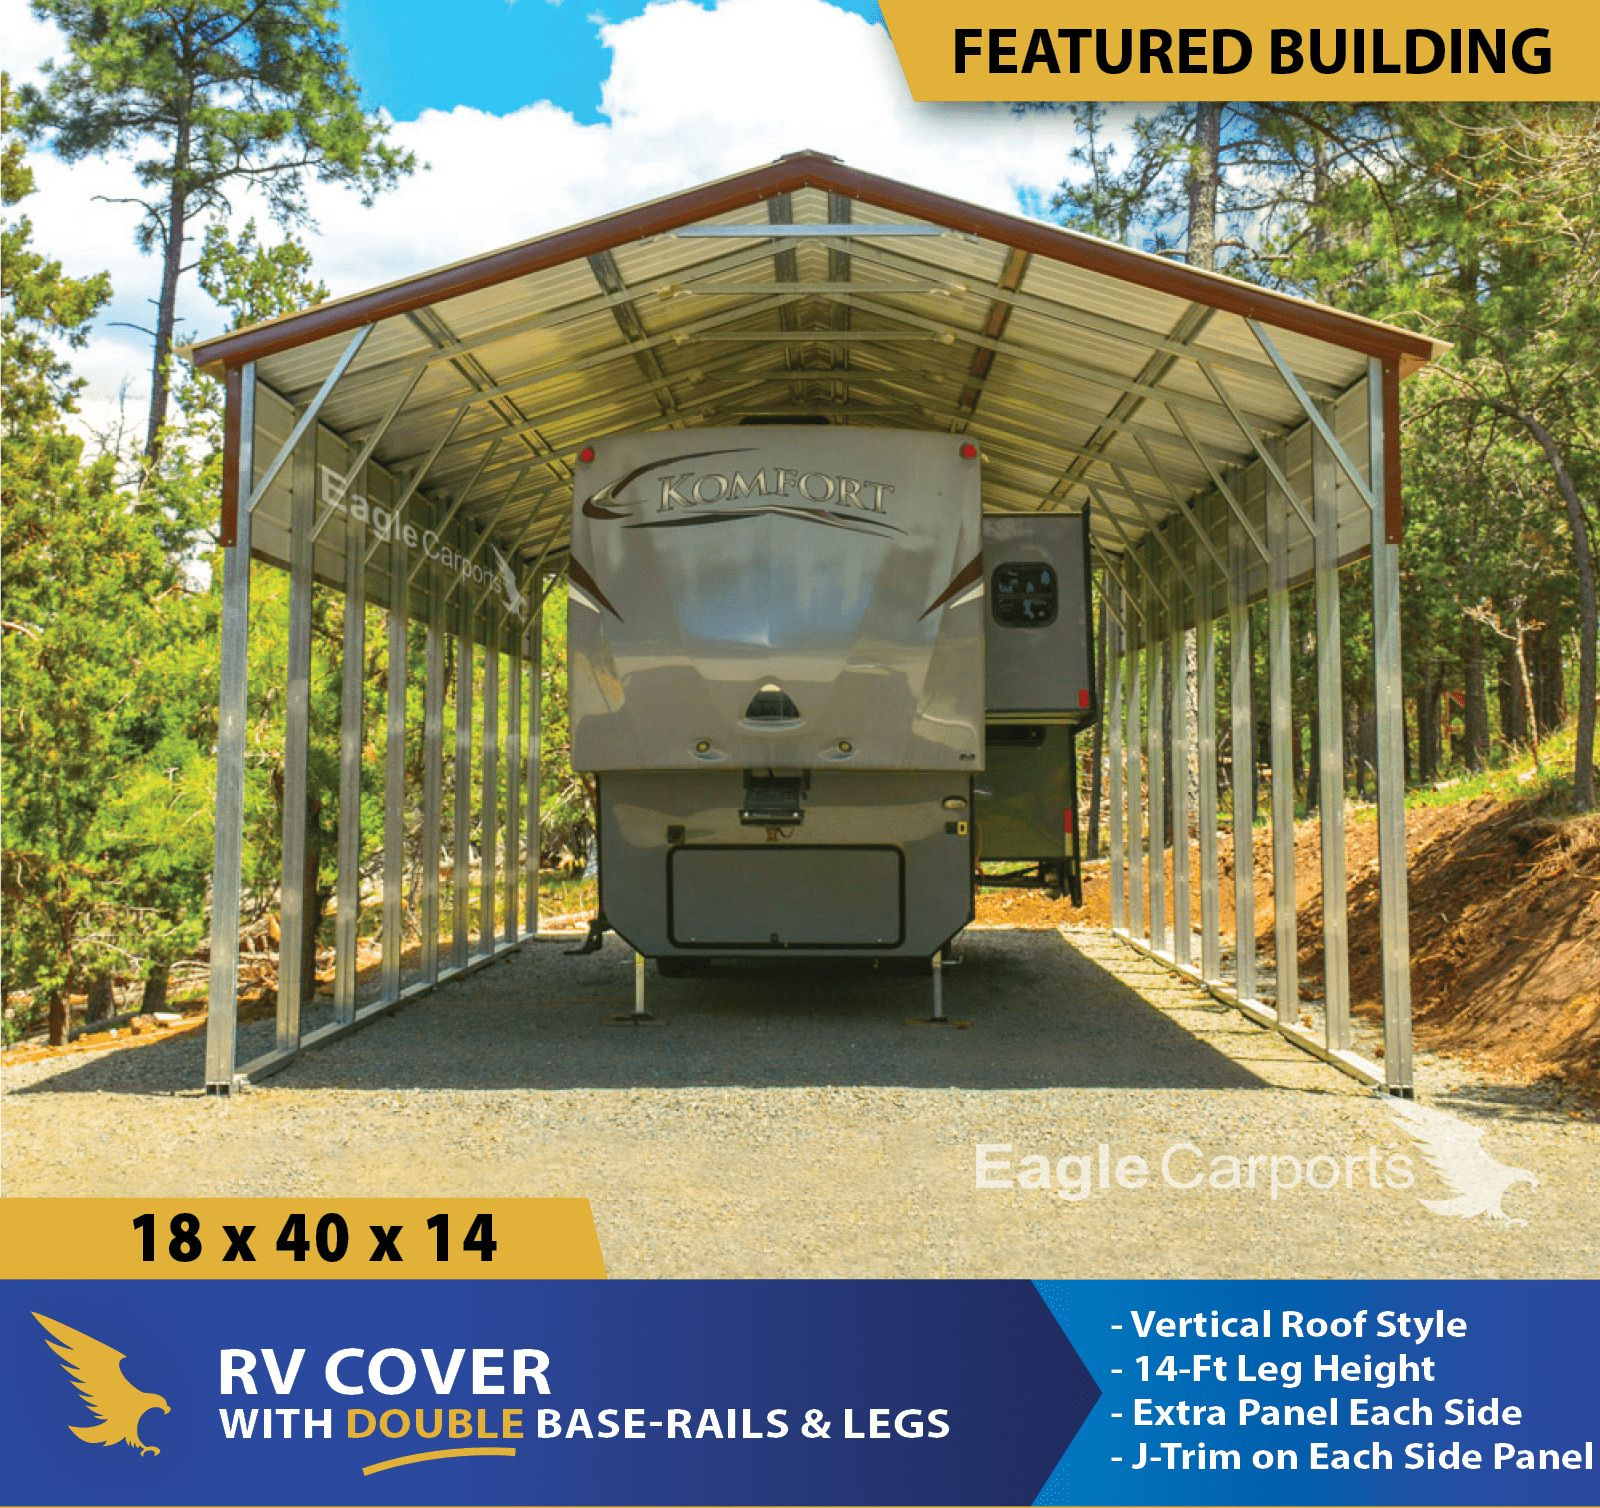 18x40x14 RV Cover built with a Vertical Roof with 14ft